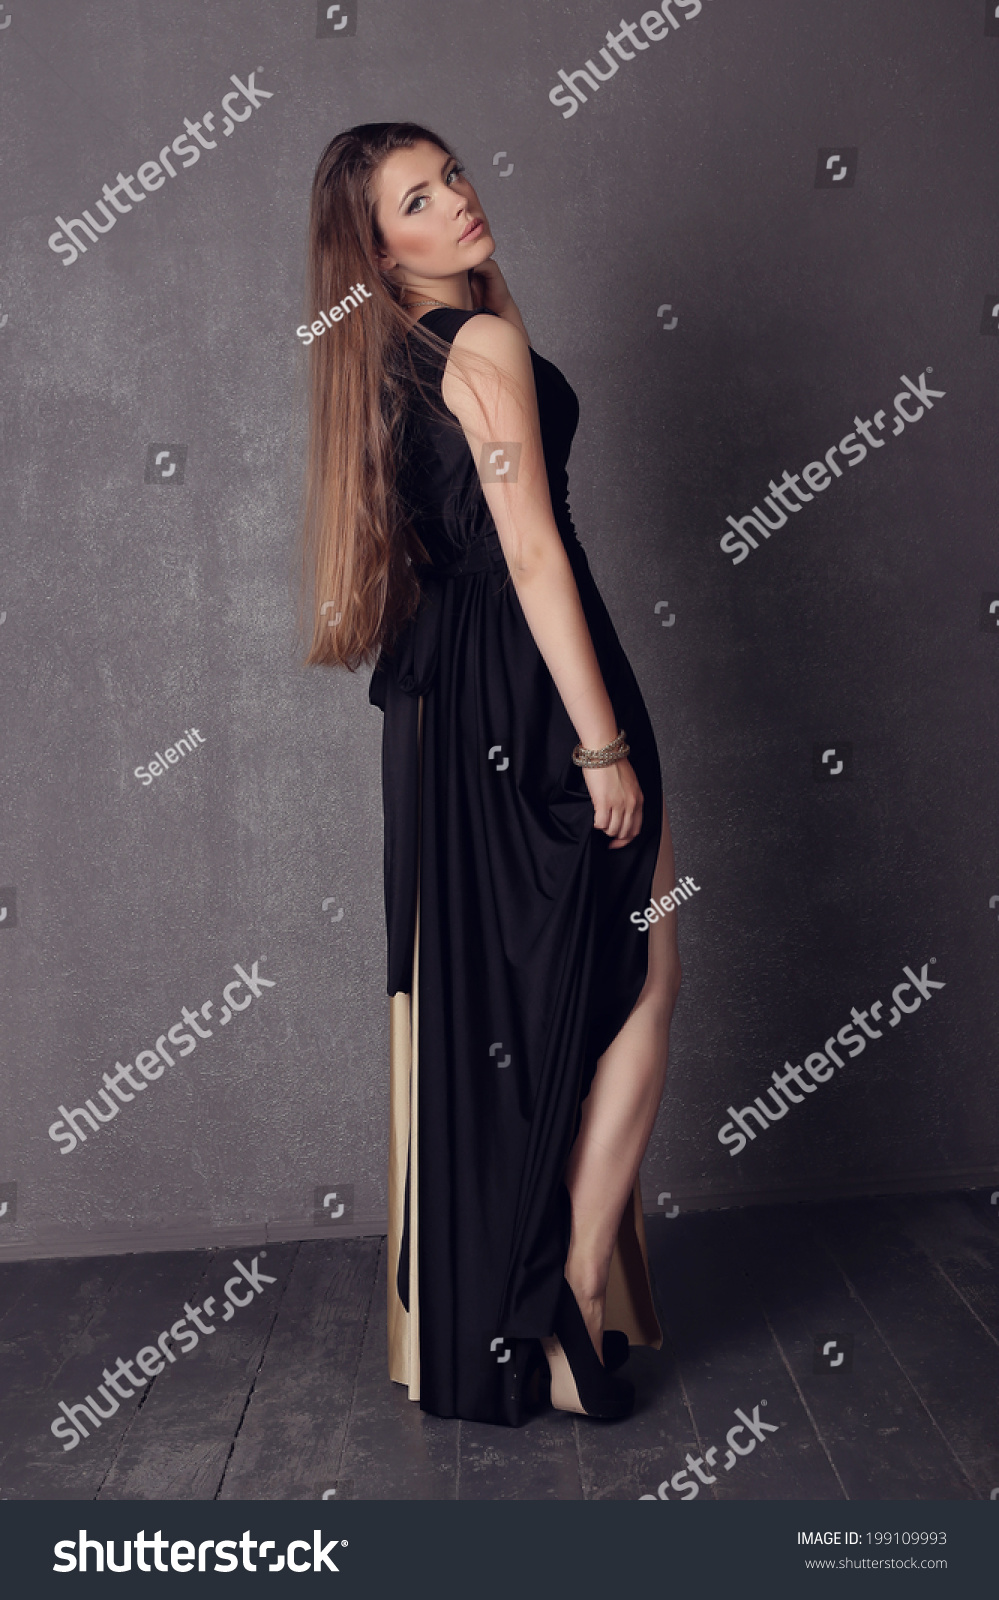 30293492b3 Young brunette lady in black ang golden dress posing on grey background.  Fashion studio shot